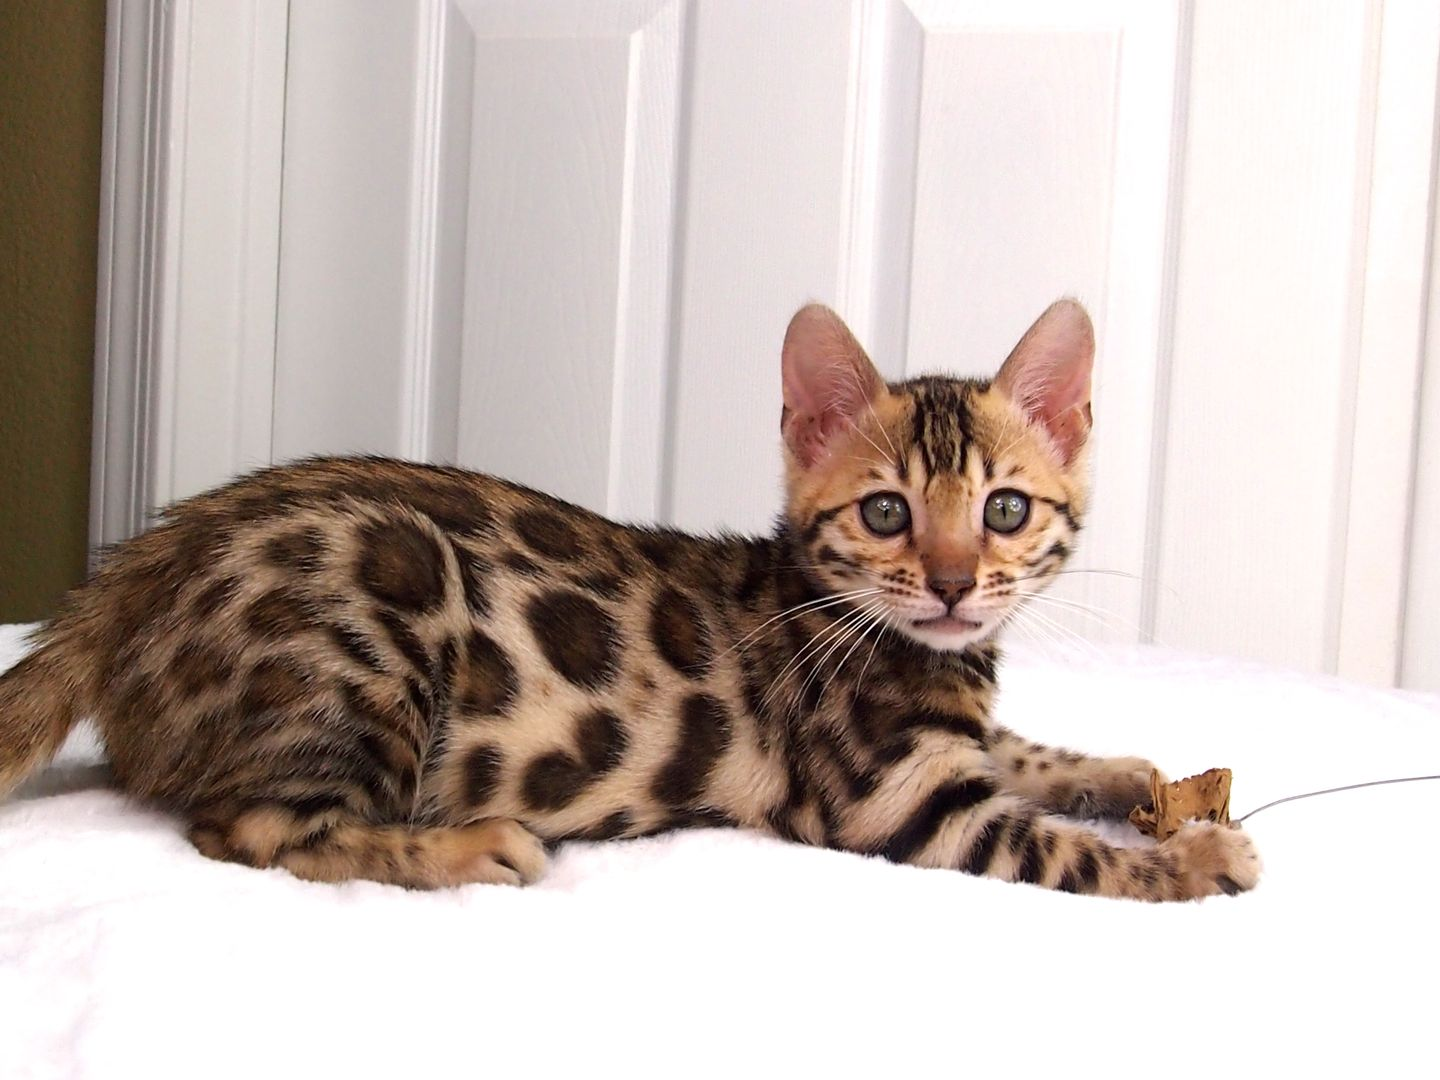 Pin by kemah buck on Scrapbook Bengal cat price, Bengal